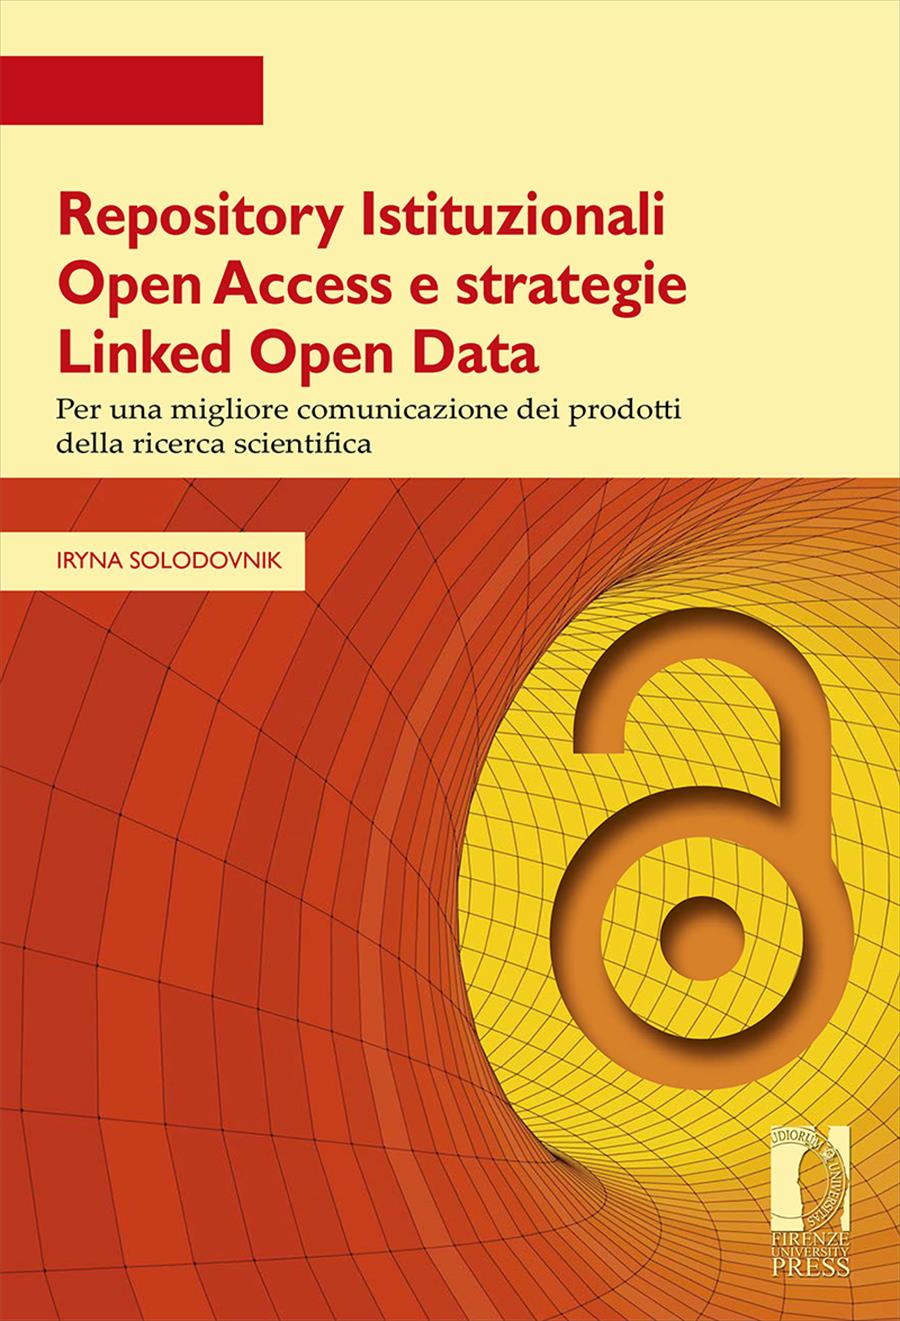 Repository Istituzionali Open Access e strategie Linked Open Data